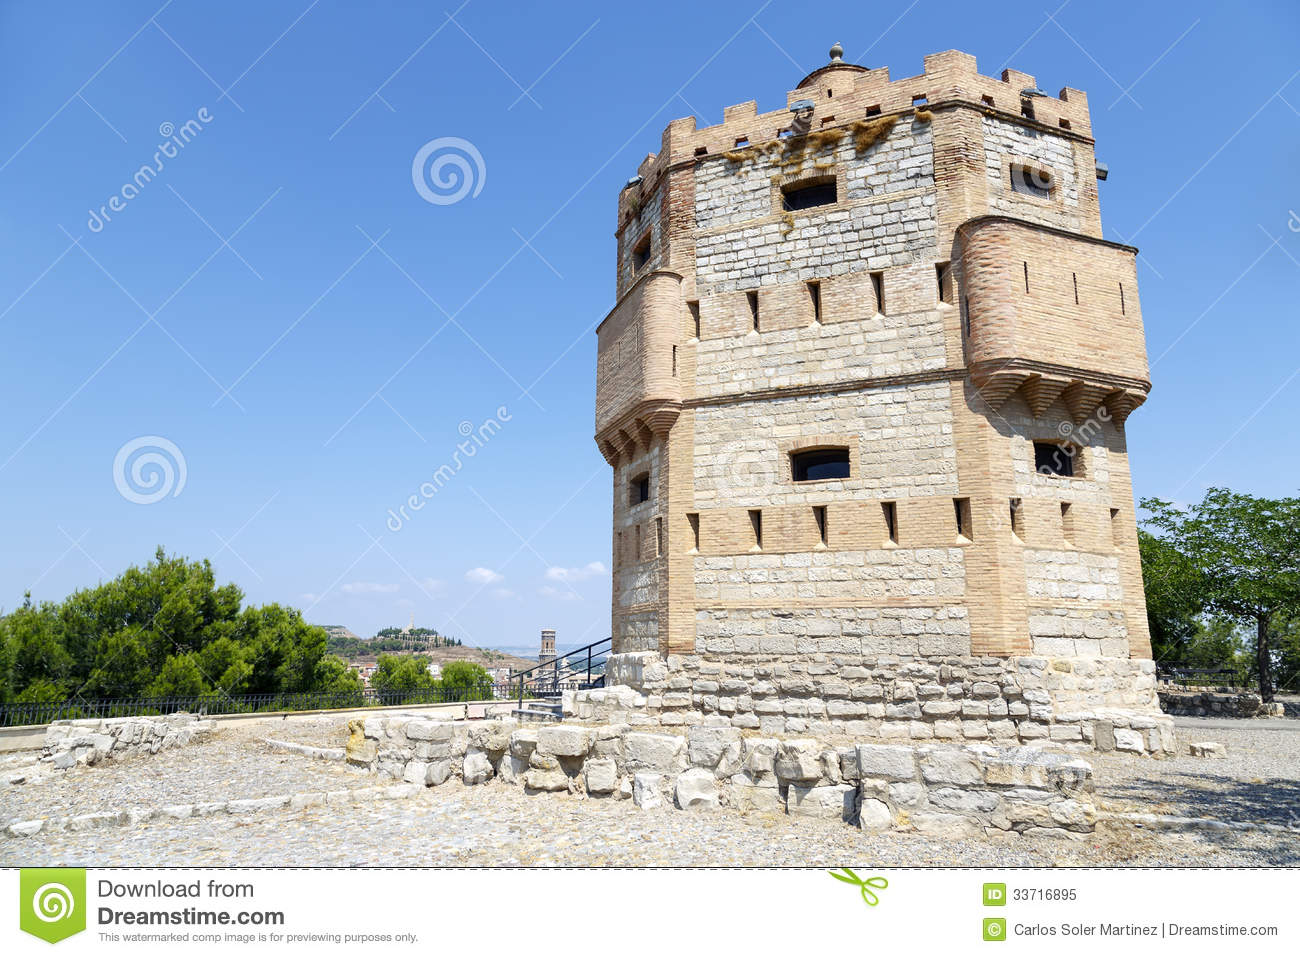 Tudela Spain  City new picture : ... in the thirteenth century on a watchtower southwest of Tudela, Spain